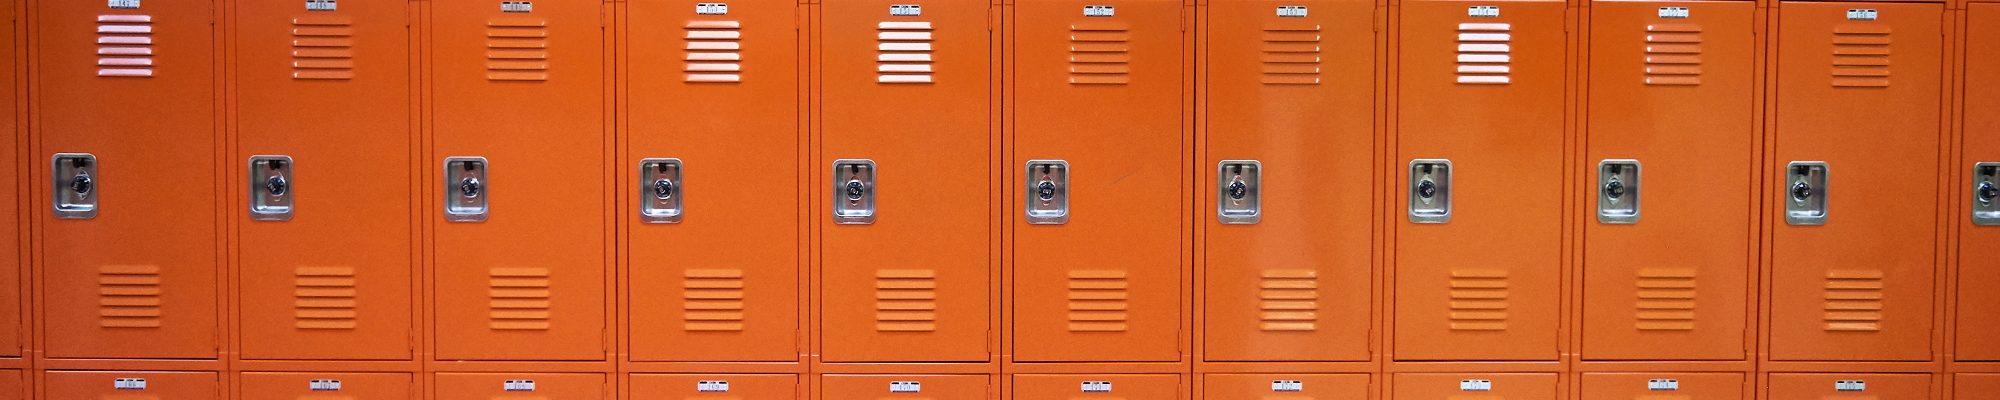 Orange lockers